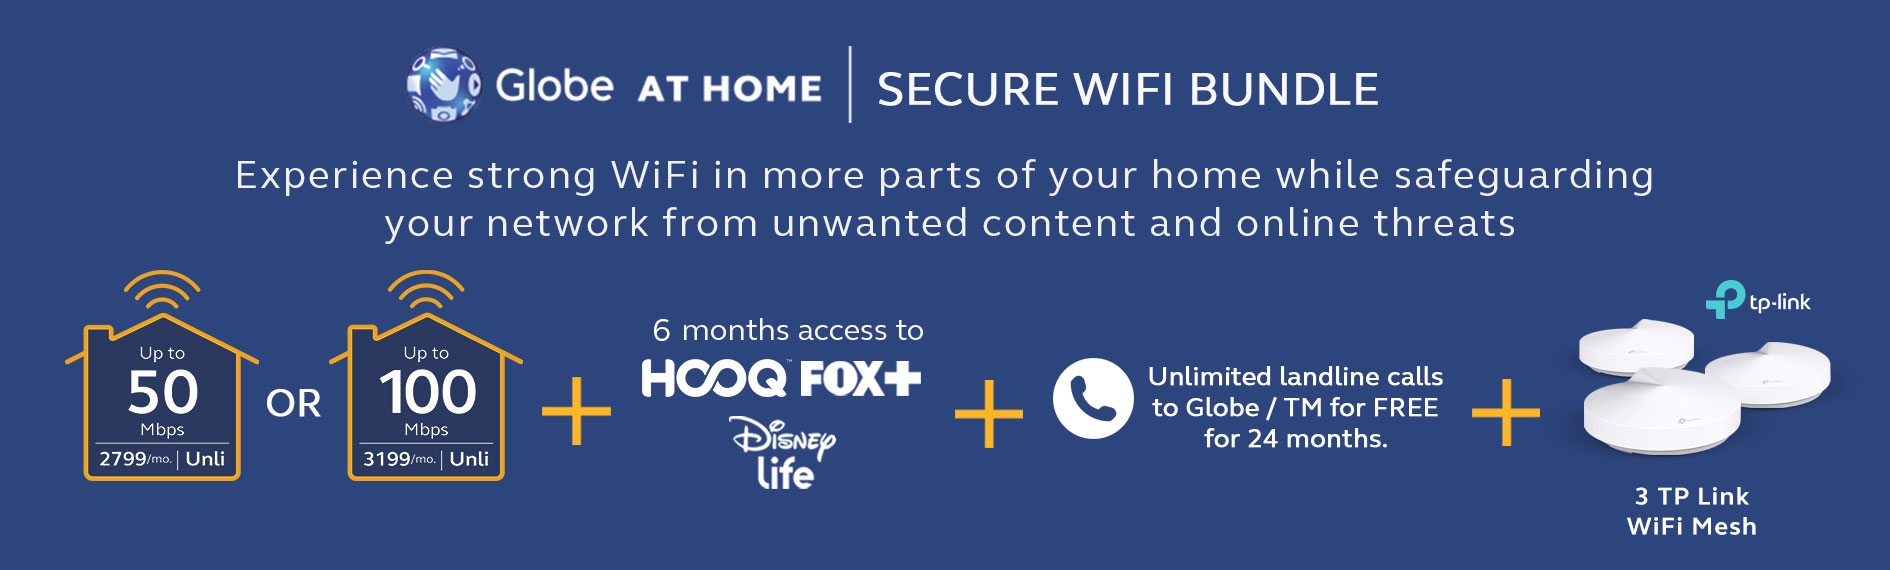 Globe At Home Secure WiFi Bundle with TP-Link Router